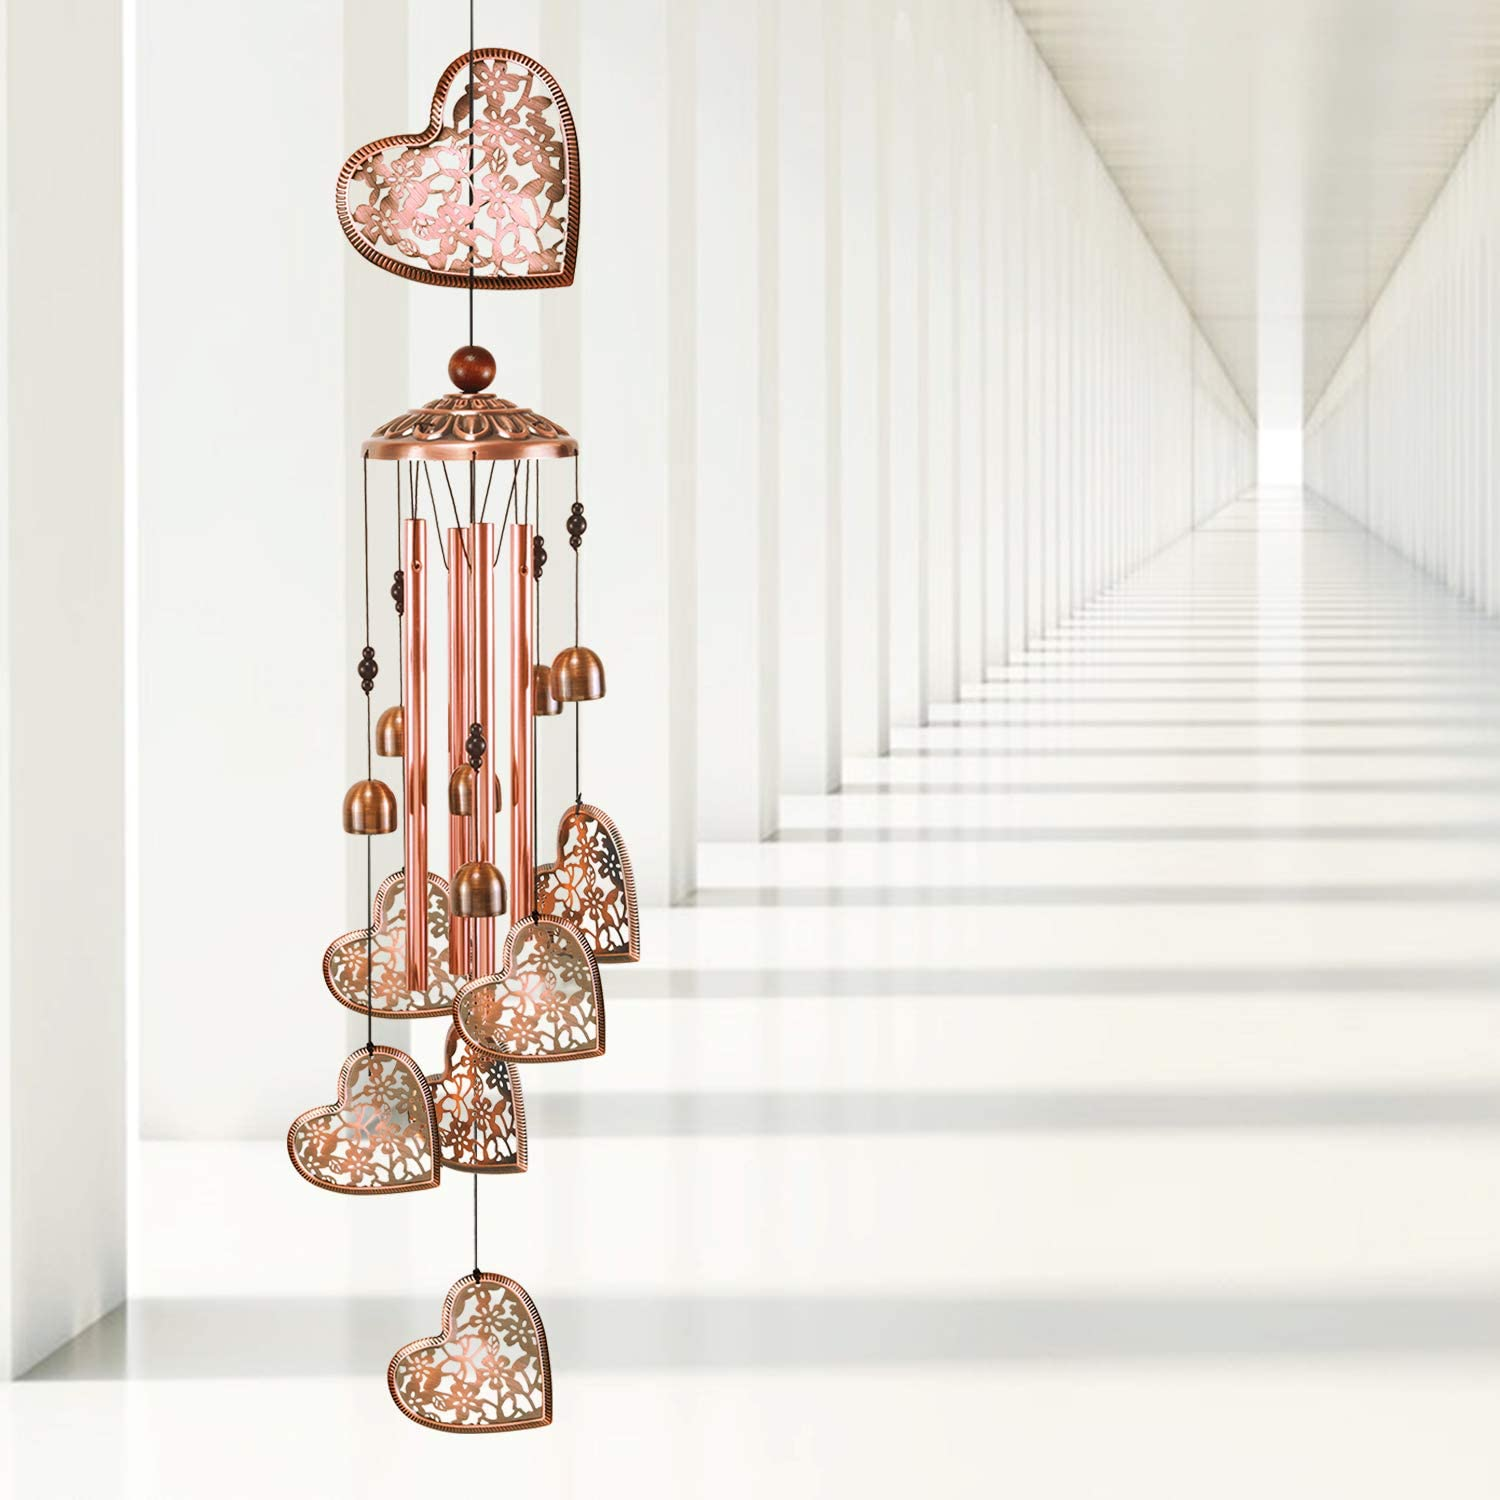 YMXBL Outdoor Max 64% OFF Heart Las Vegas Mall Wind Chimes Decoration for Gift Mom